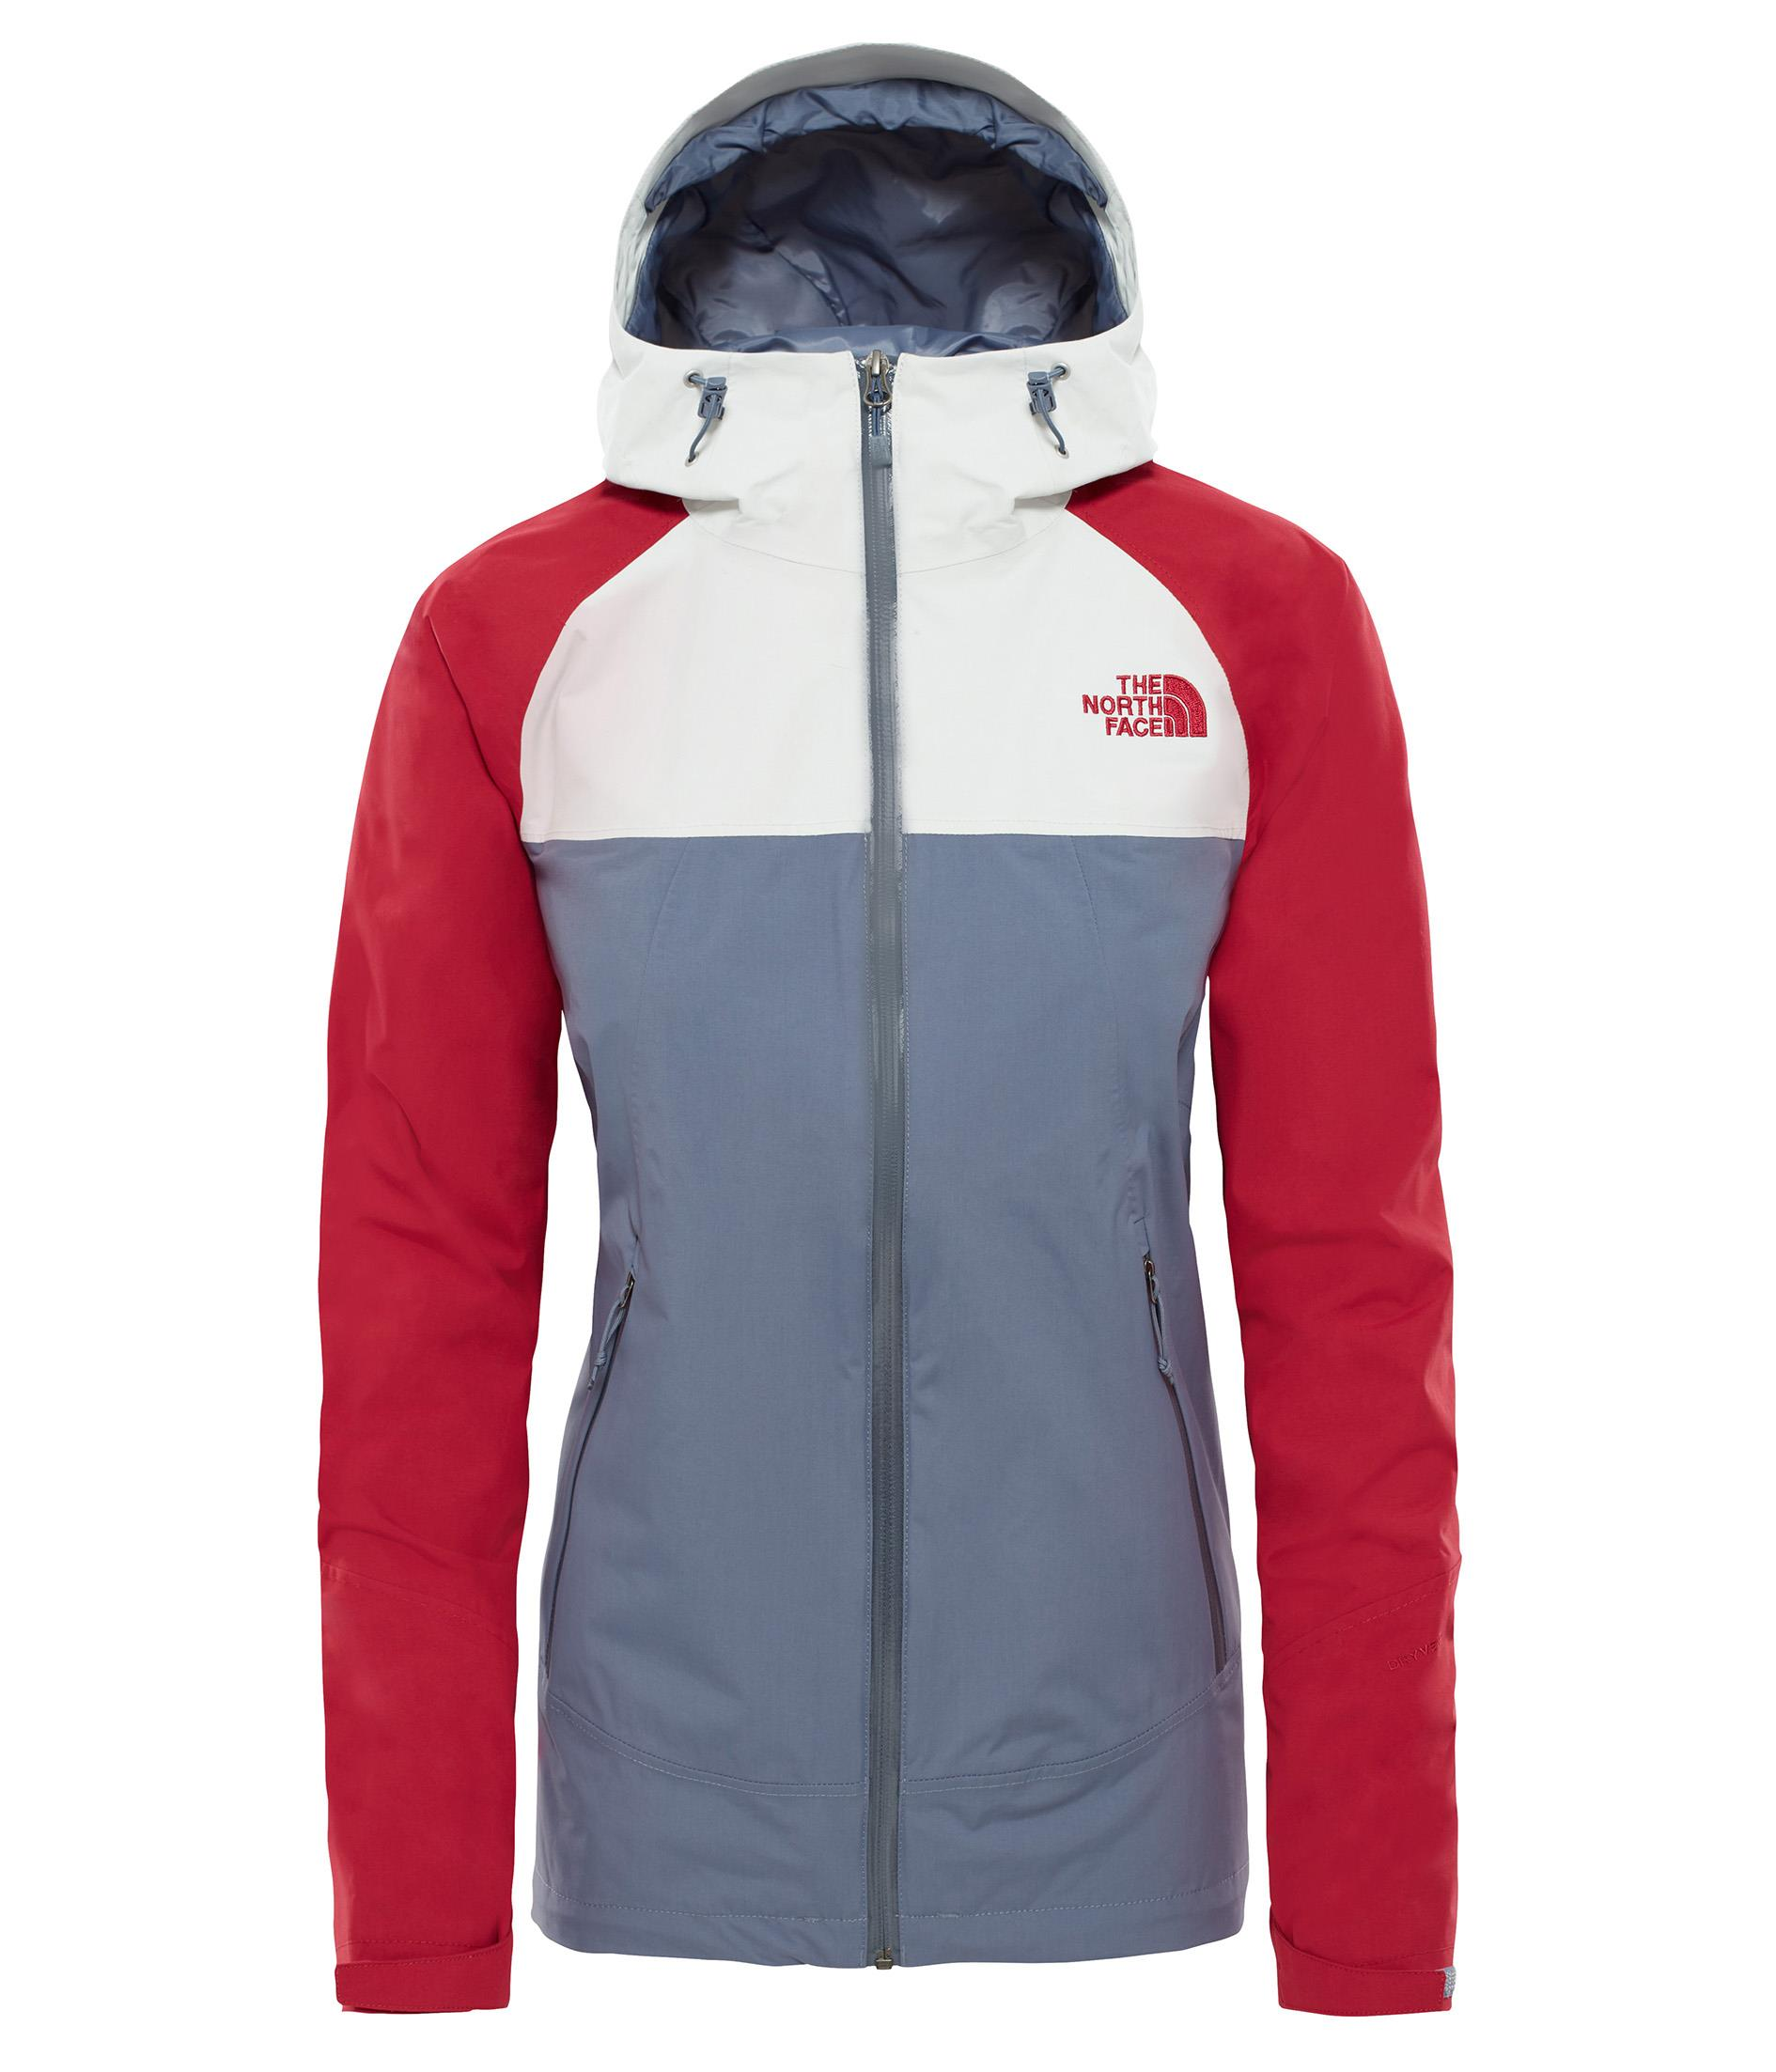 The North Face Kadın Stratos  Ceket